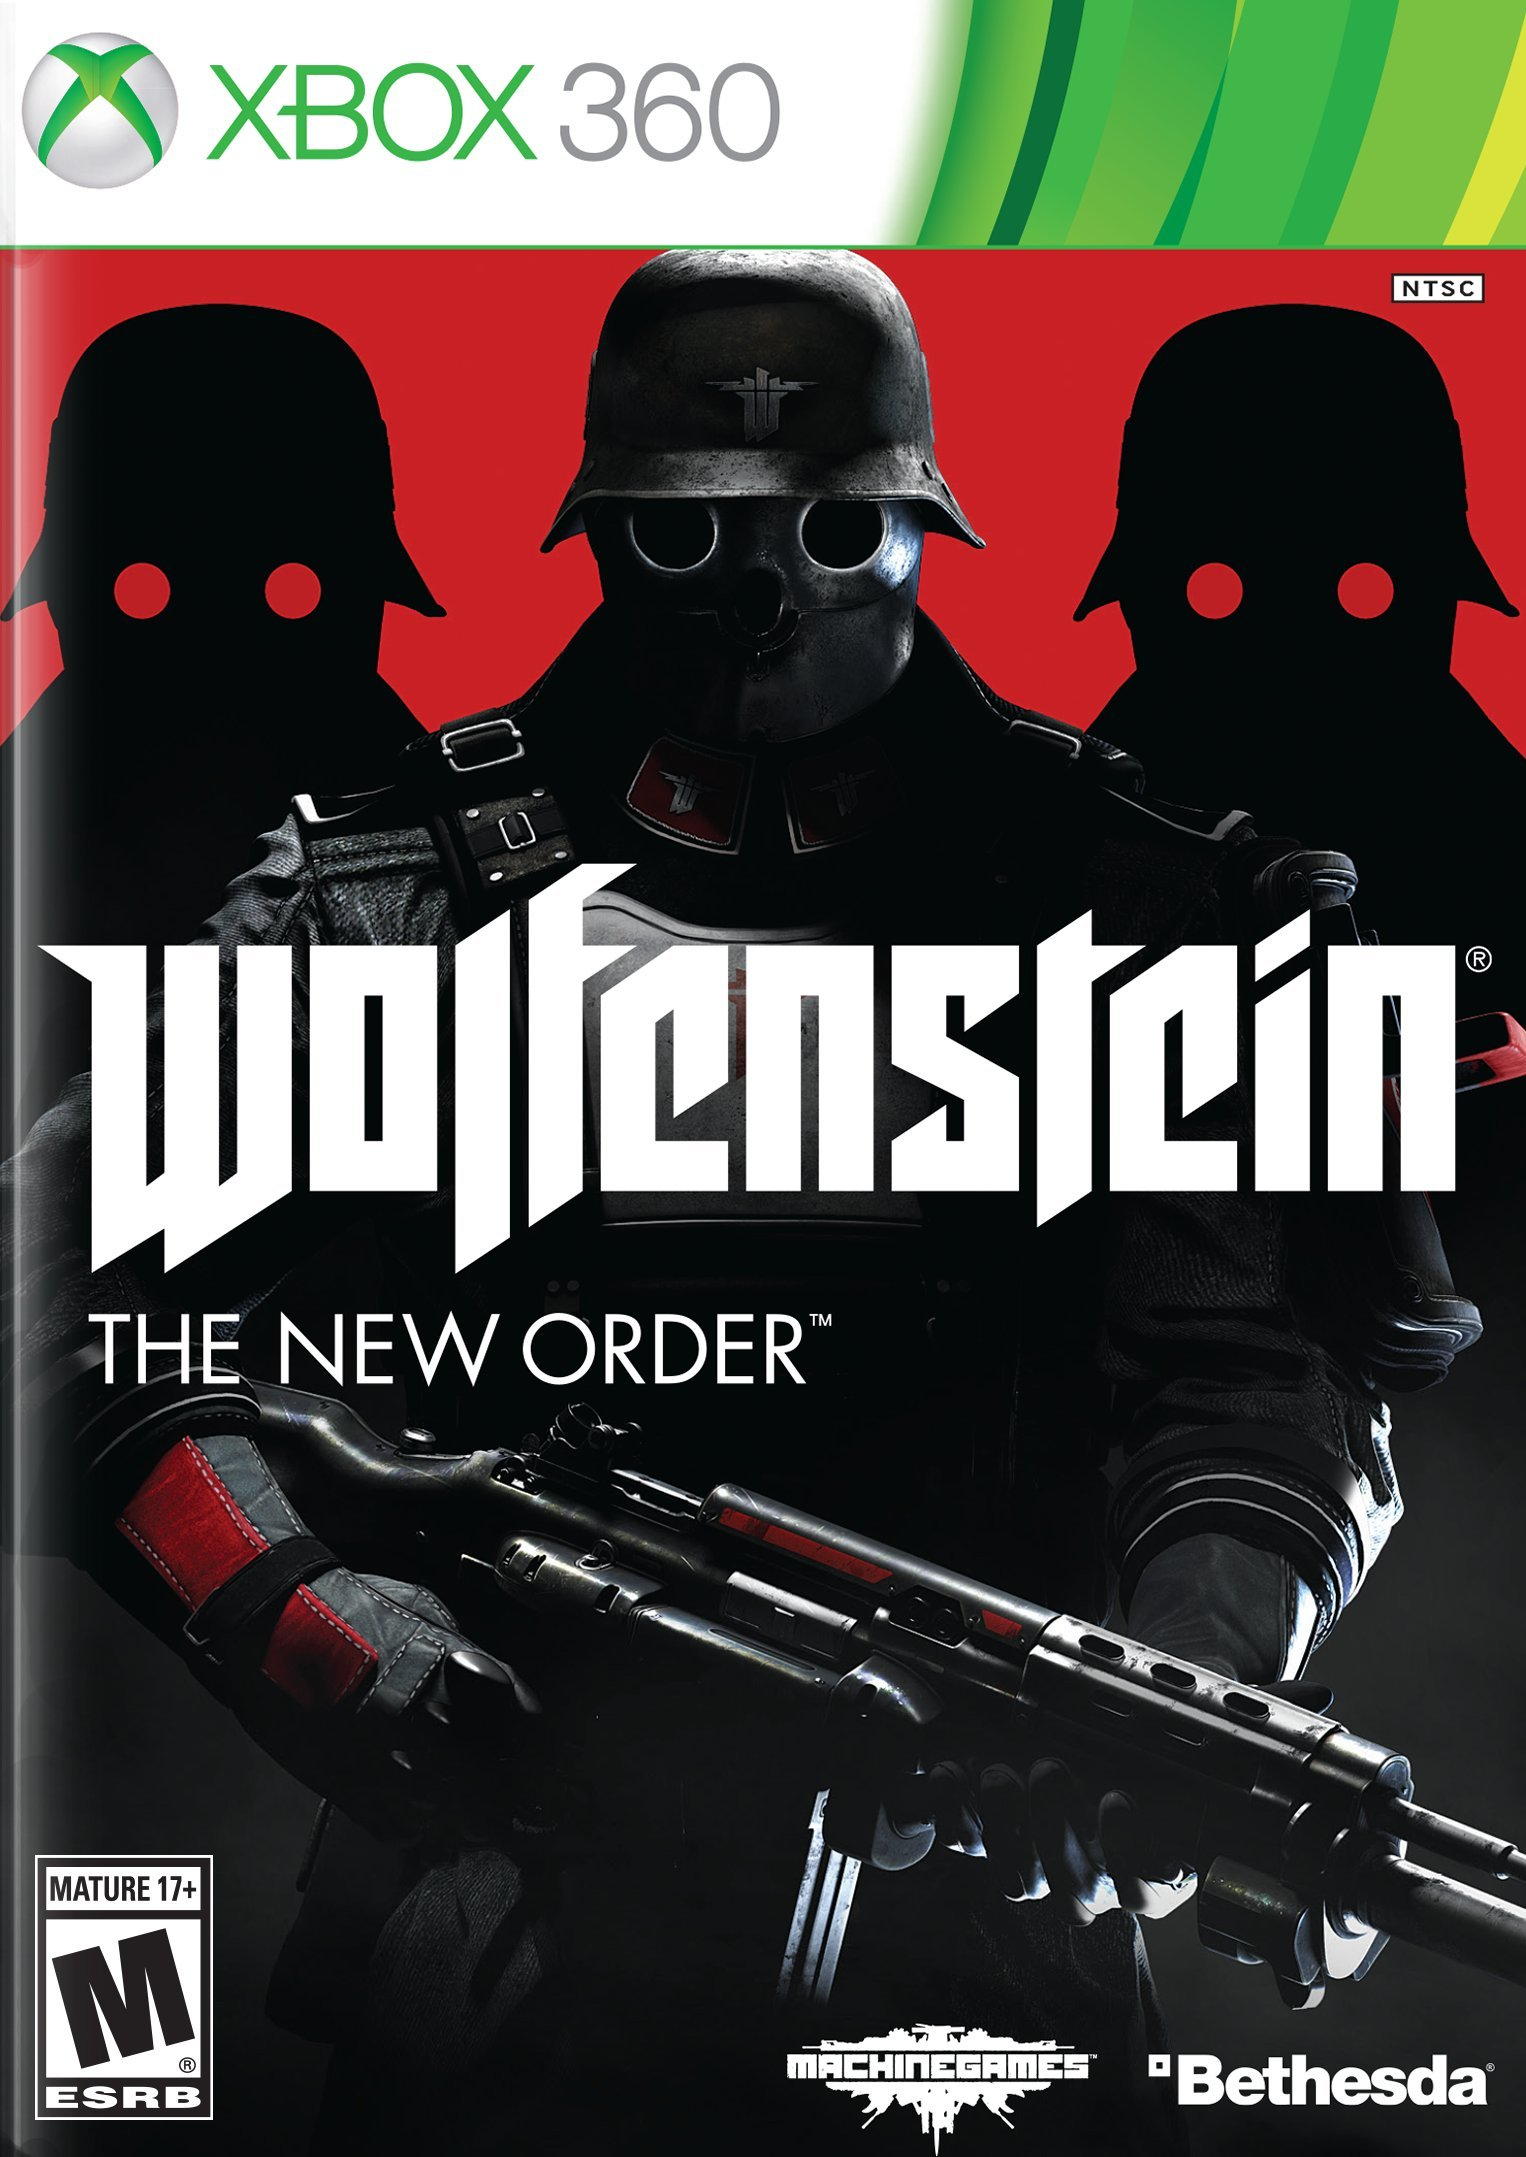 Xbox 360 Video Games New Releases Wolfenstein: The New O...